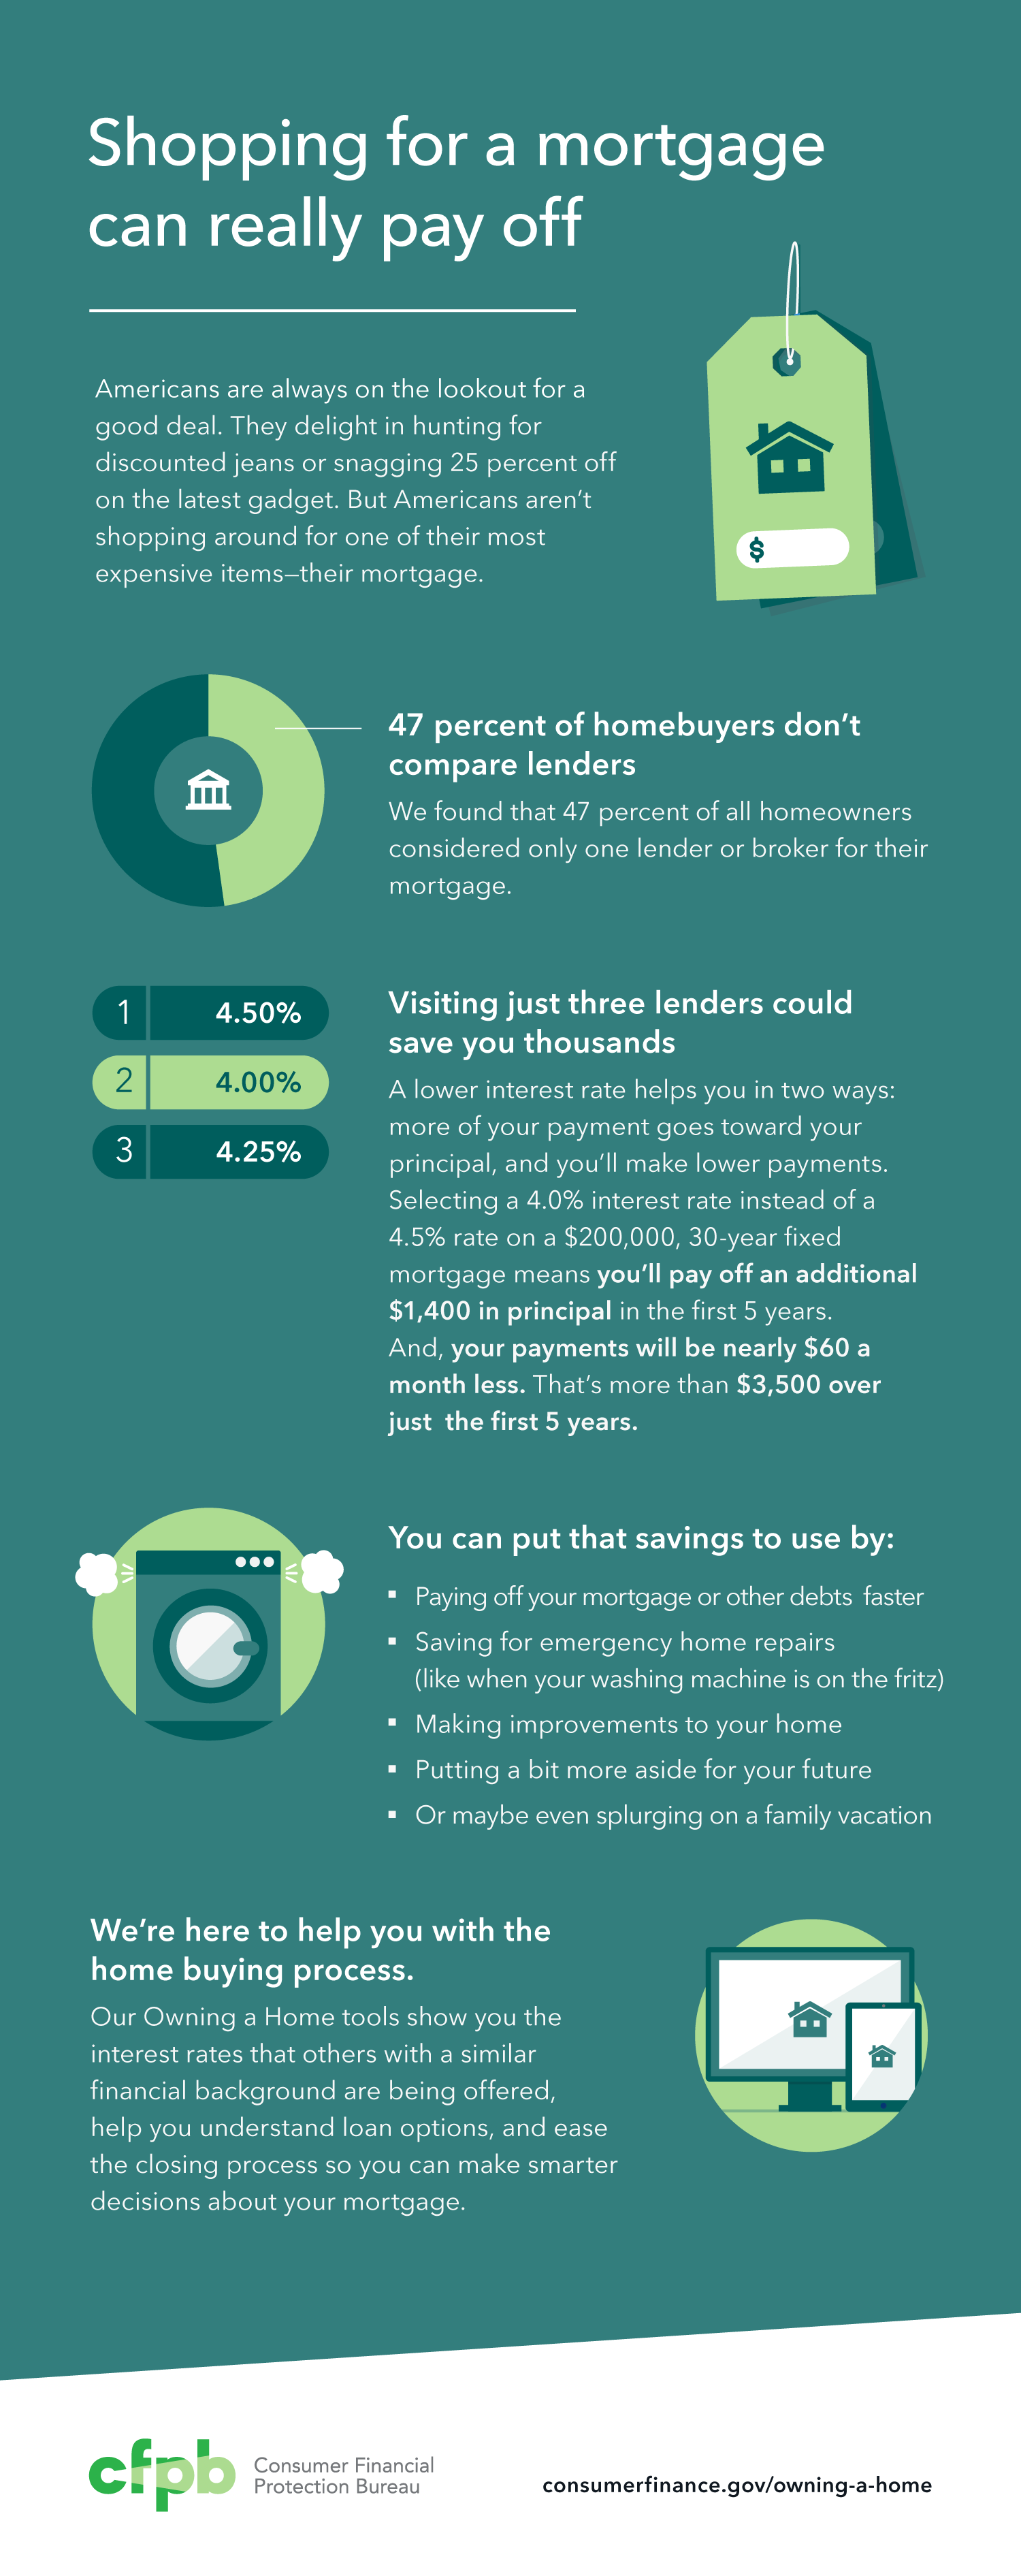 Infographic: shopping for a mortgage can really pay off. 47 percent of homebuyers don't compare lenders. Visiting just three lenders could save you thousands. You can put that savings to use. We're here to help you with the home buying process. Our Owning a Home tools show you the interest rates that others with a similar financial background are being offered, help you understand loan options, and ease the closing process so you can make smarter decisions about your mortgage. Visit http://consumerfinance.gov/owning-a-home